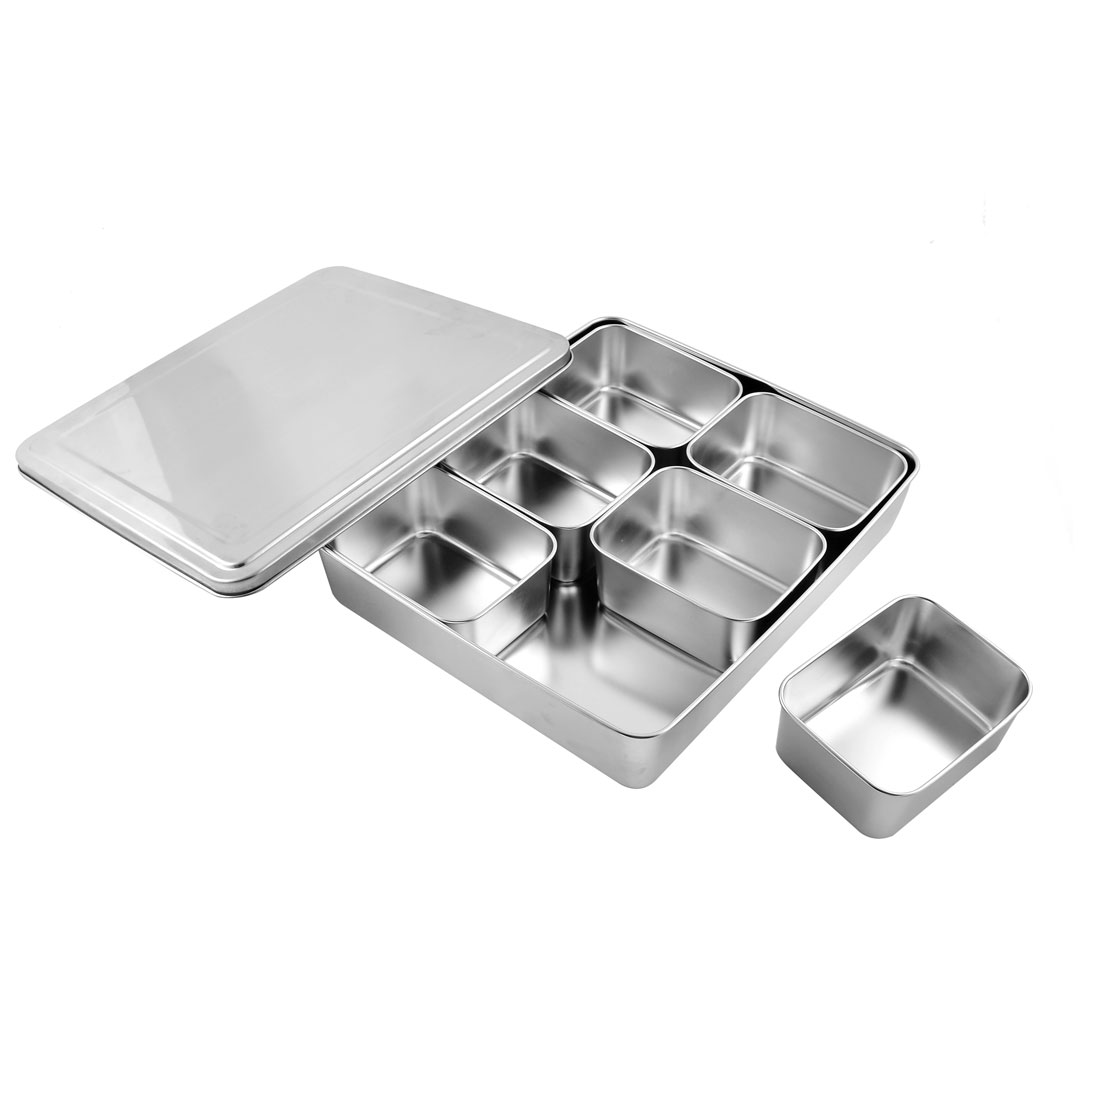 Stainless Steel Square Shape 6 Compartments Condiment Box Case Container